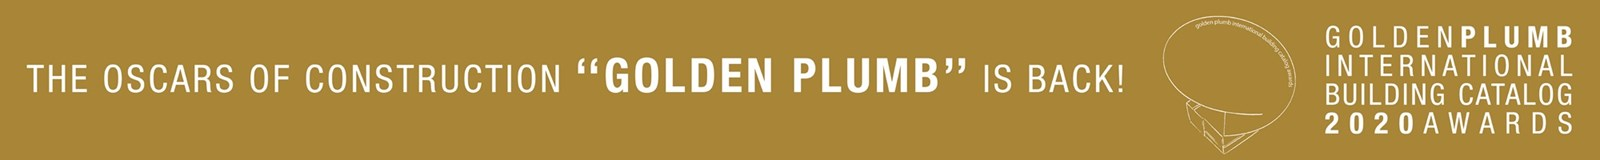 Golden Plumb - super